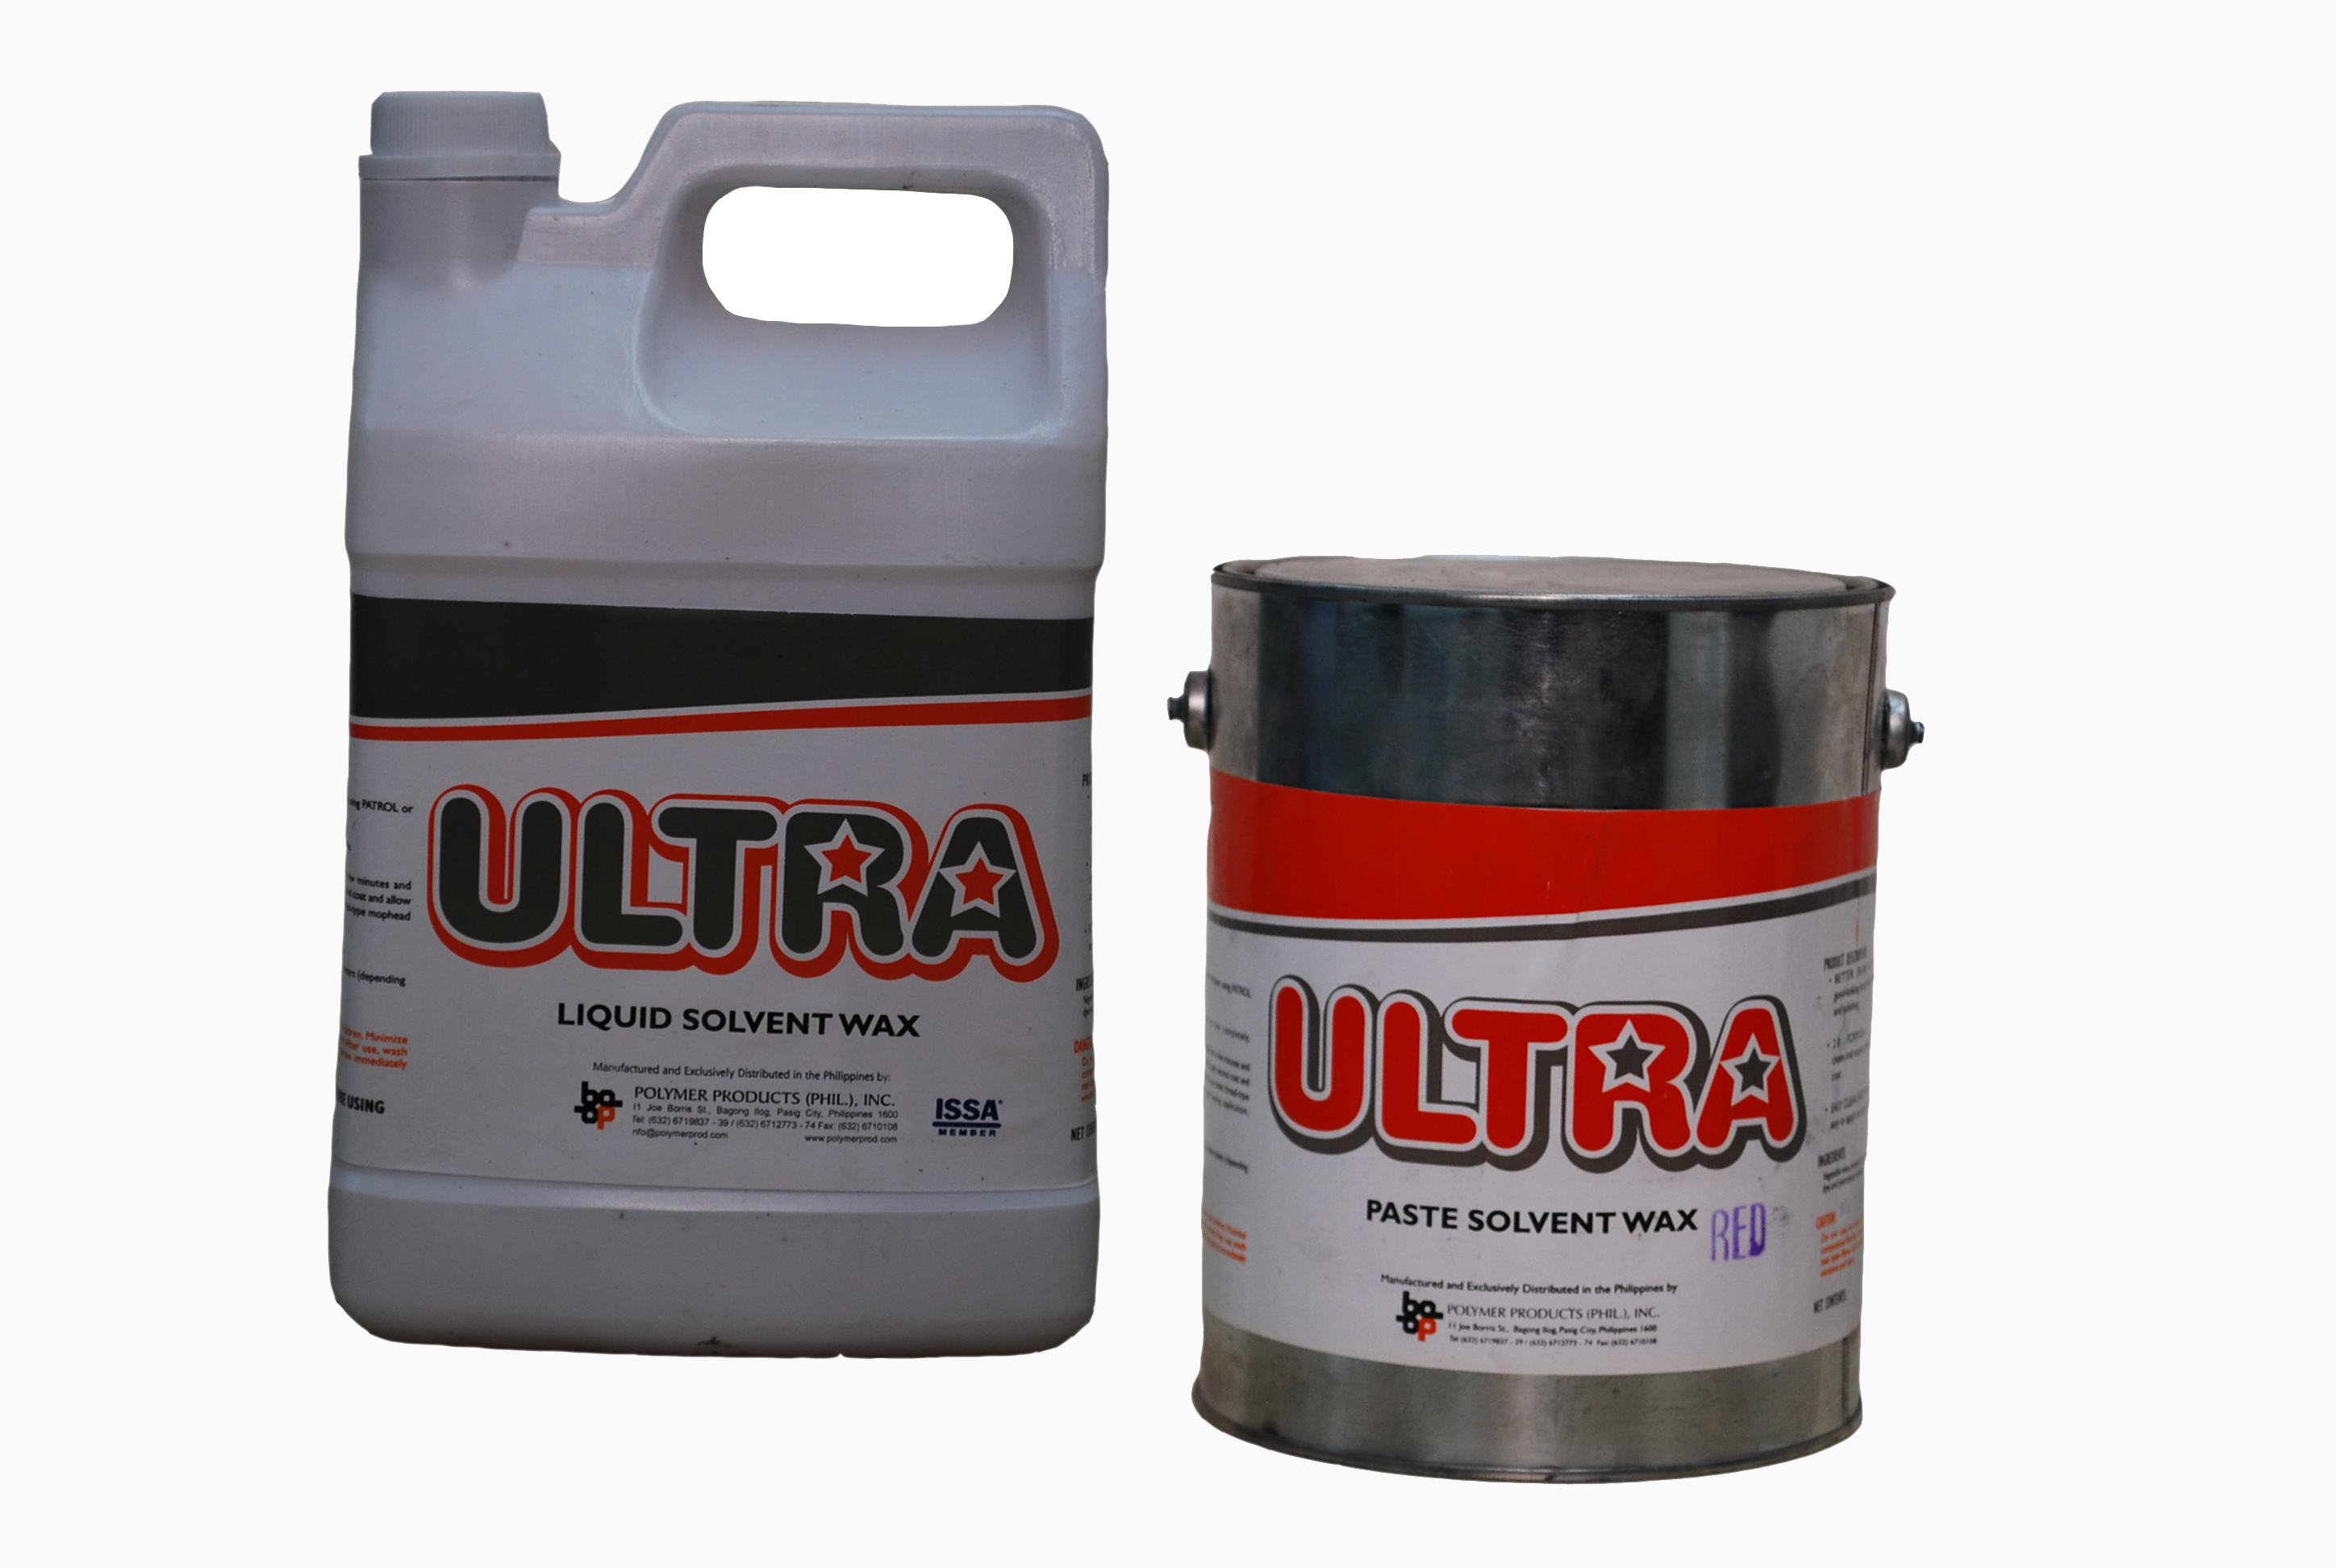 Ultra Floor Wax Polymer Products Phil Inc